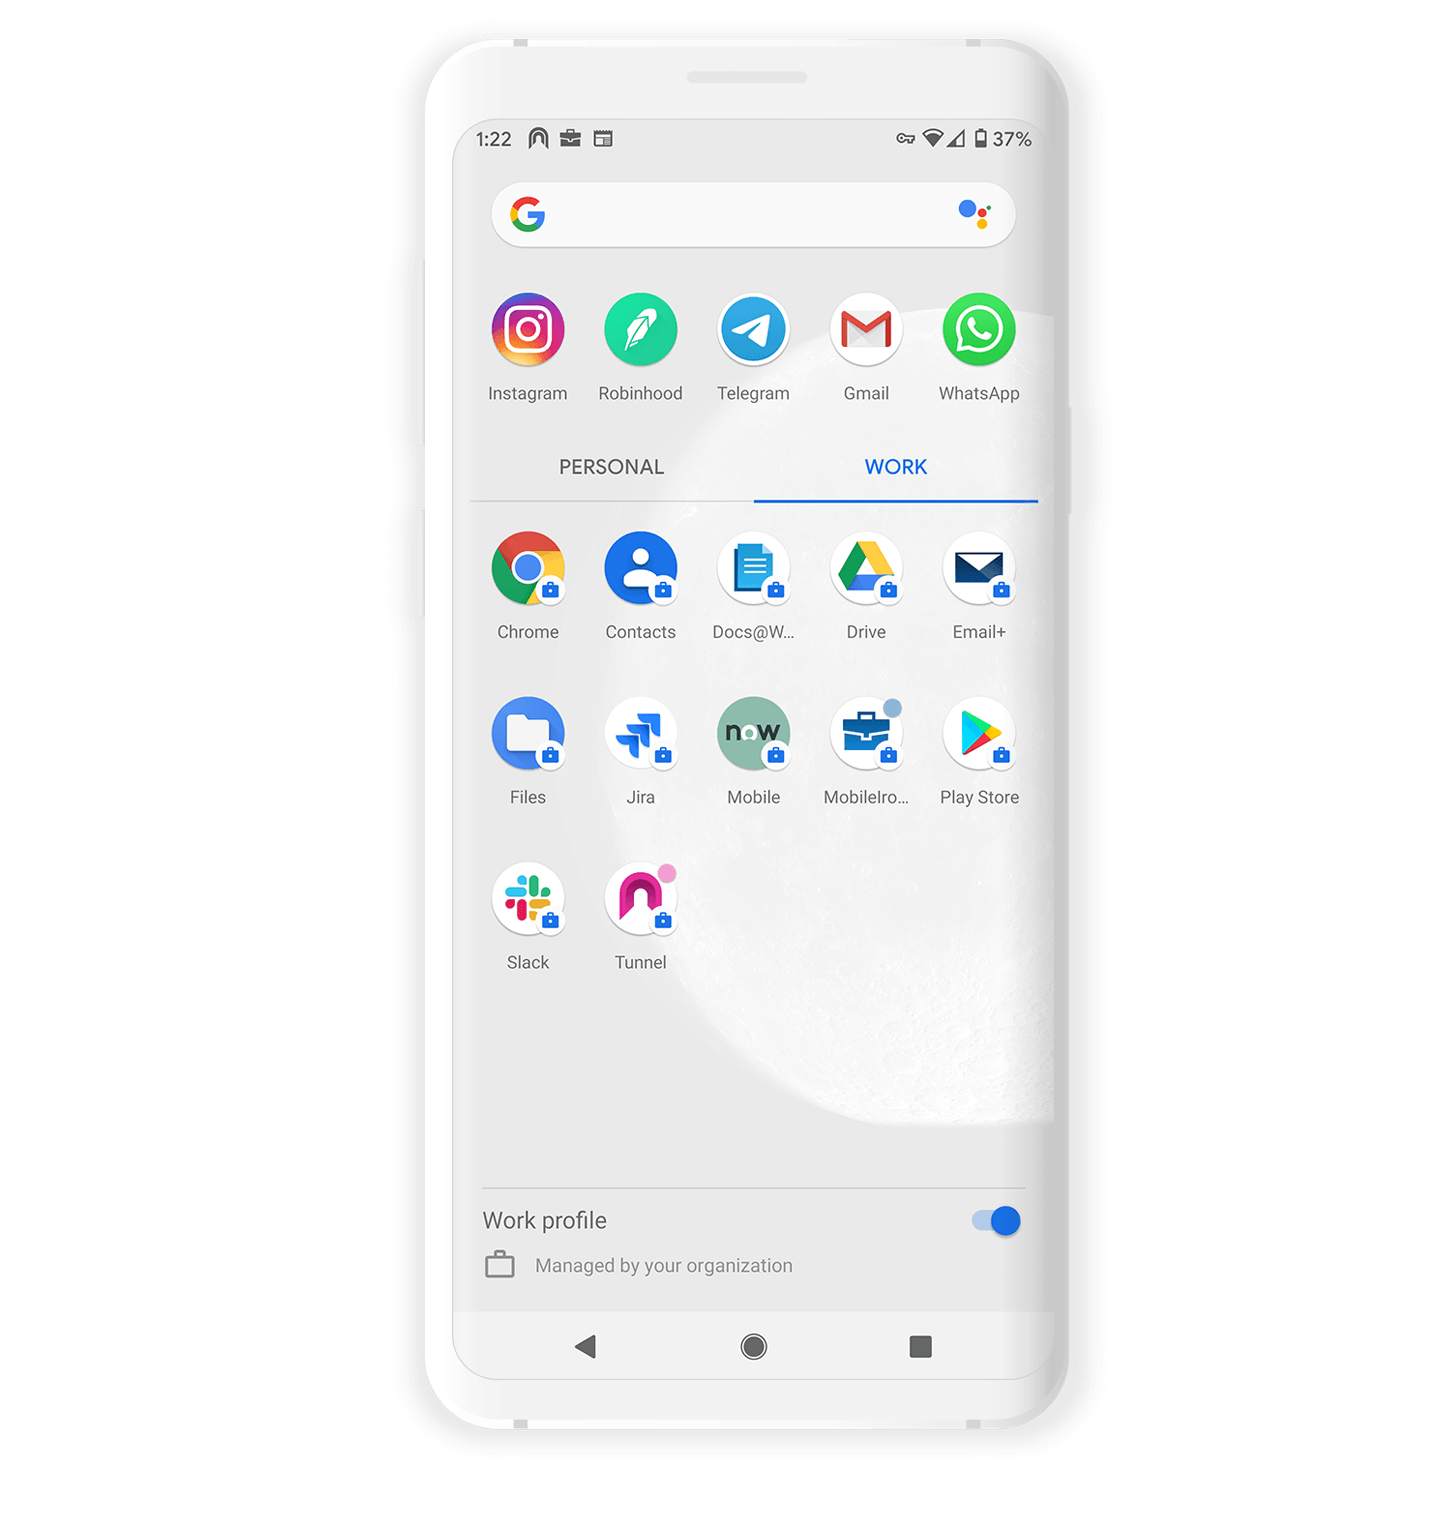 Productivity Apps for Android Devices, Secure Mobile Browsing, Secure Email, Contacts and Documents with MobileIron UEM